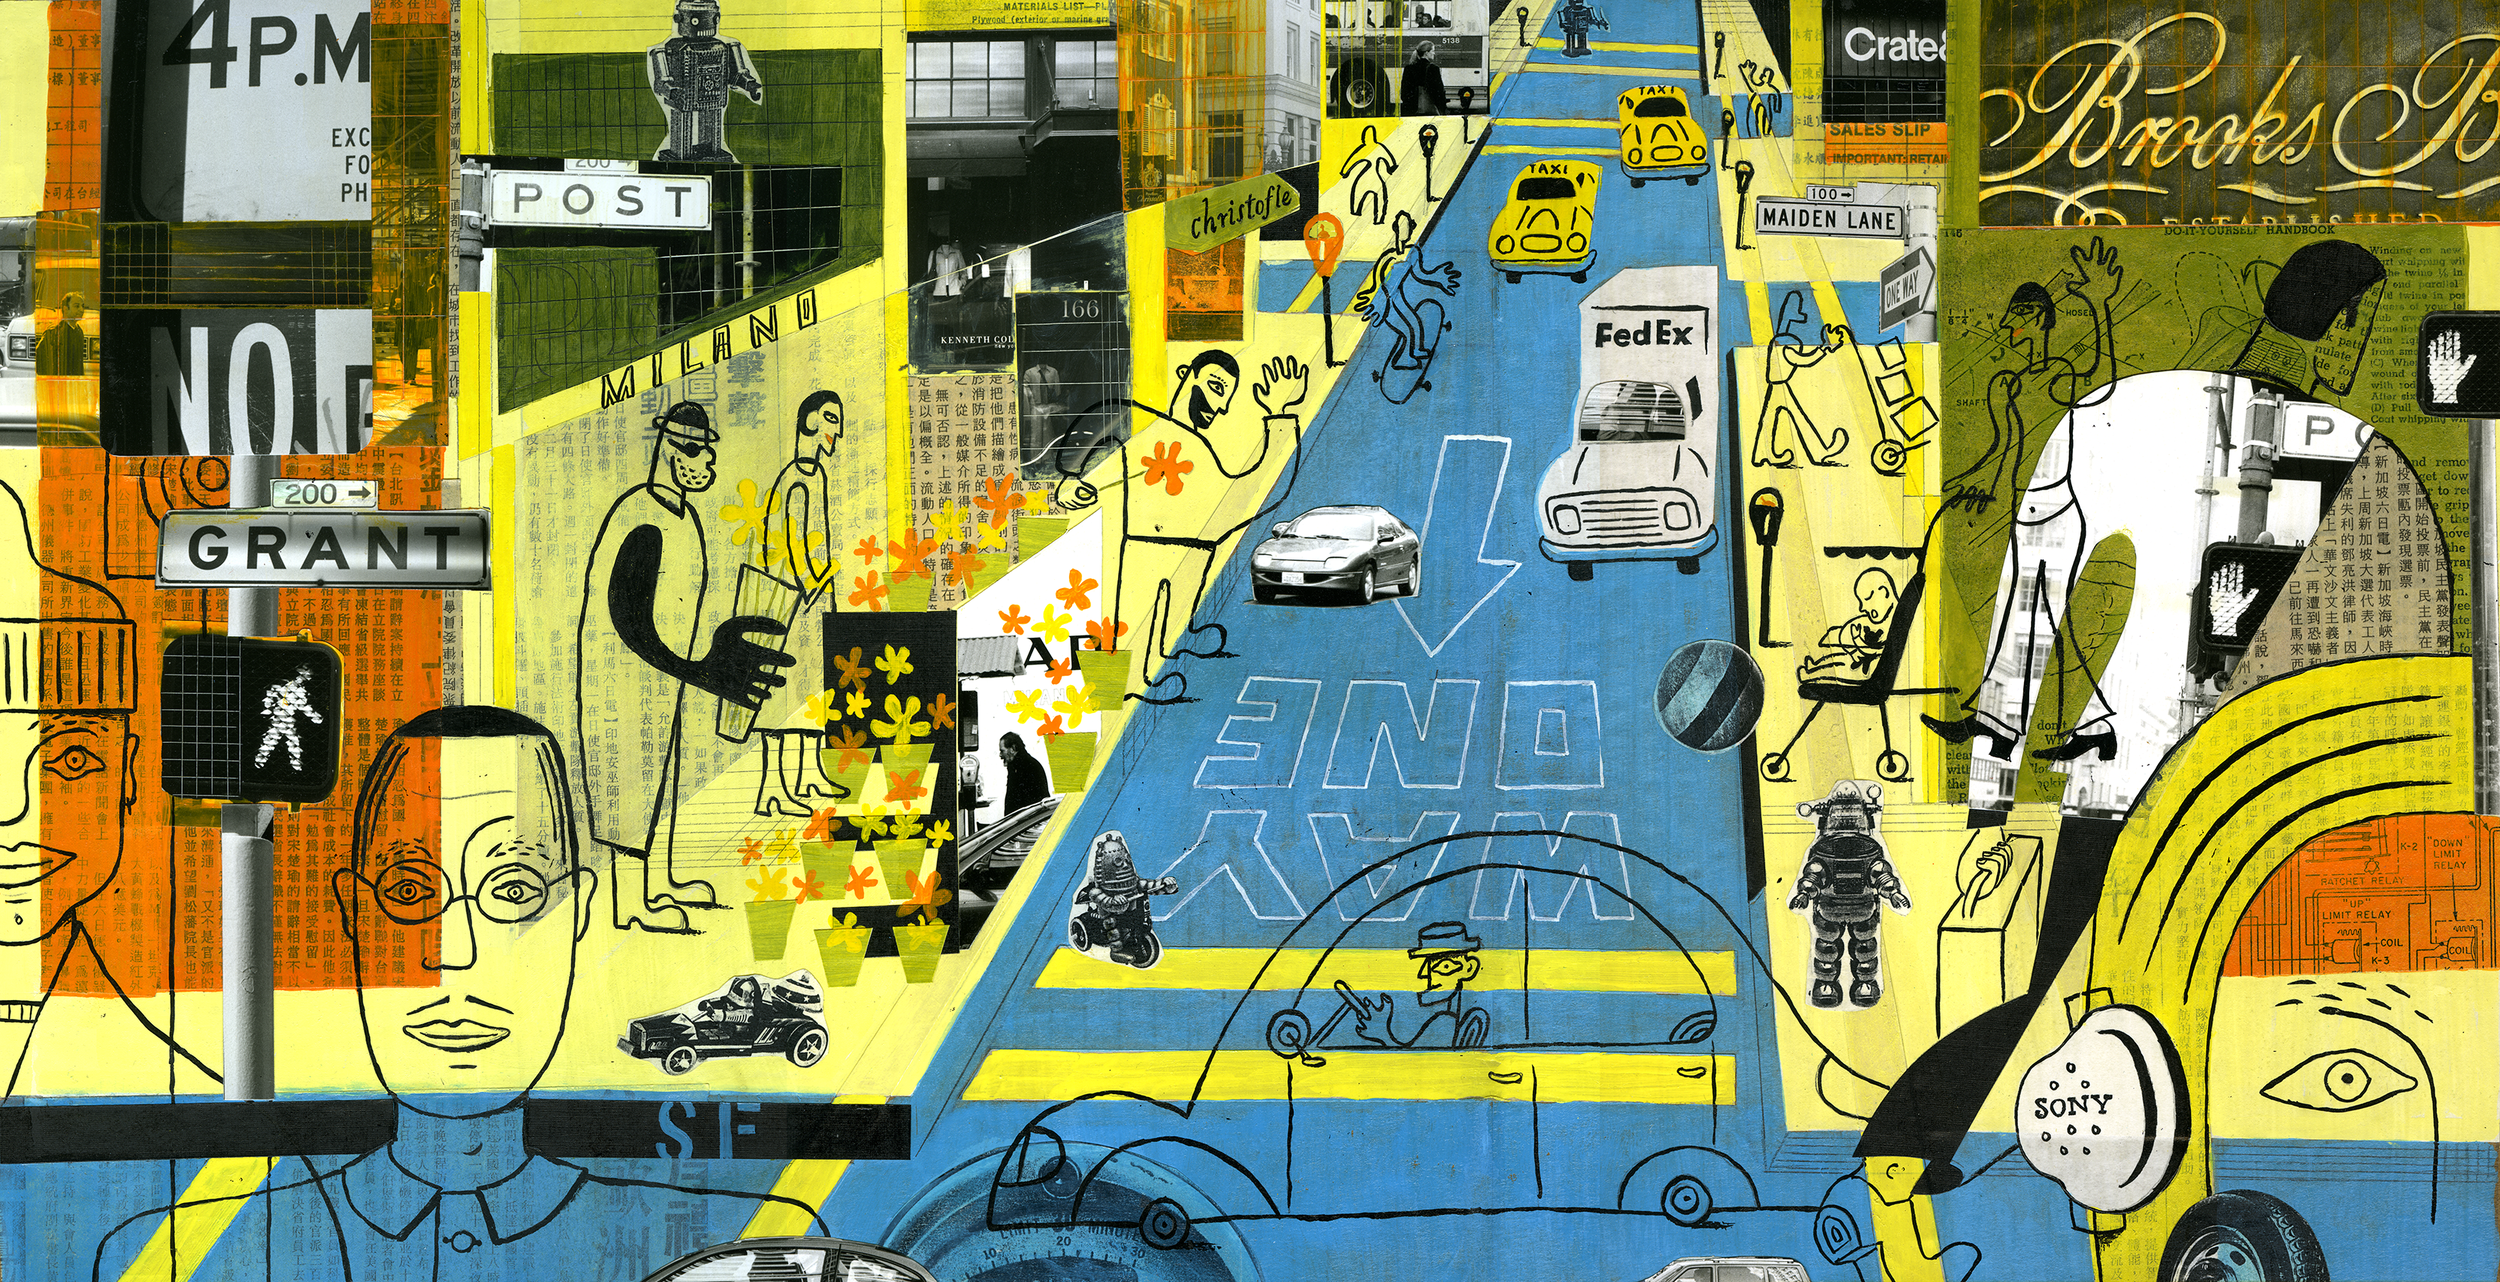 Rosemary_Grant Street_composite.png